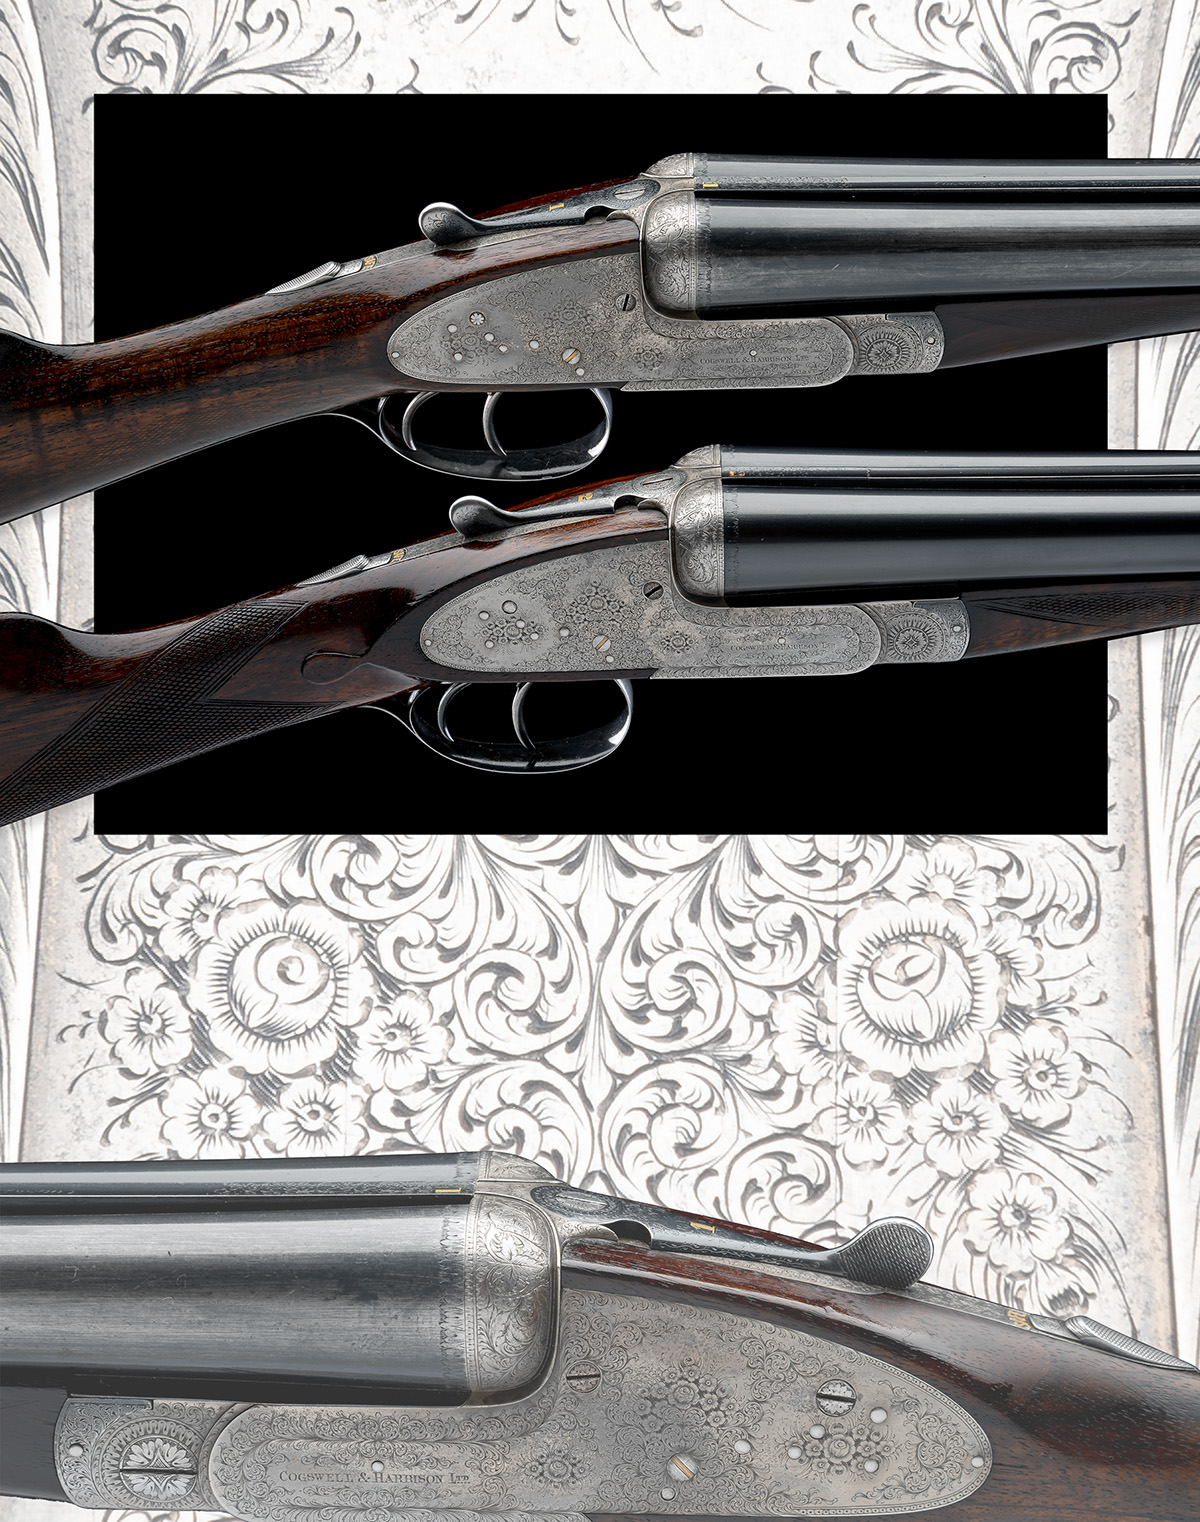 COGSWELL & HARRISON A PAIR OF 12-BORE 'EXTRA QUALITY VICTOR' SIDELOCK EJECTORS, serial no. 42510/ - Image 10 of 10